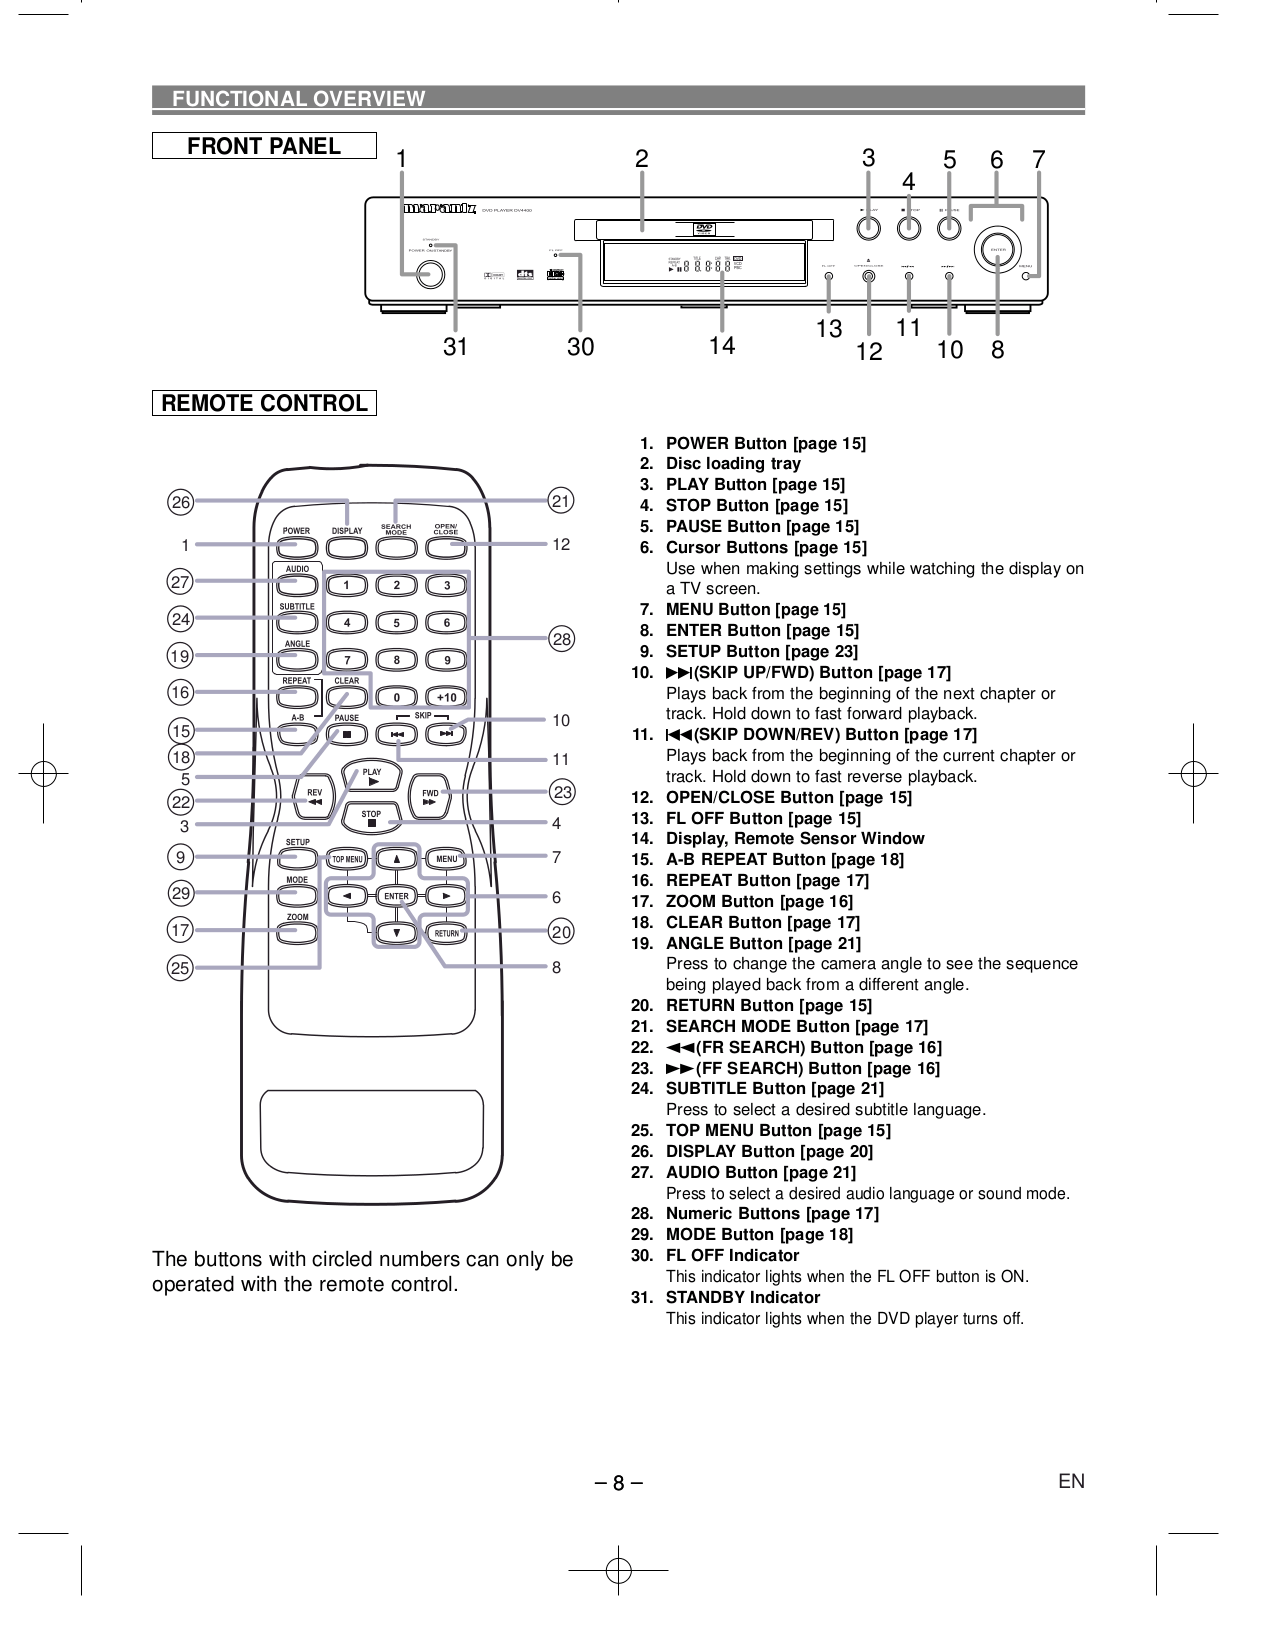 PDF manual for Marantz DVD Players DV4400